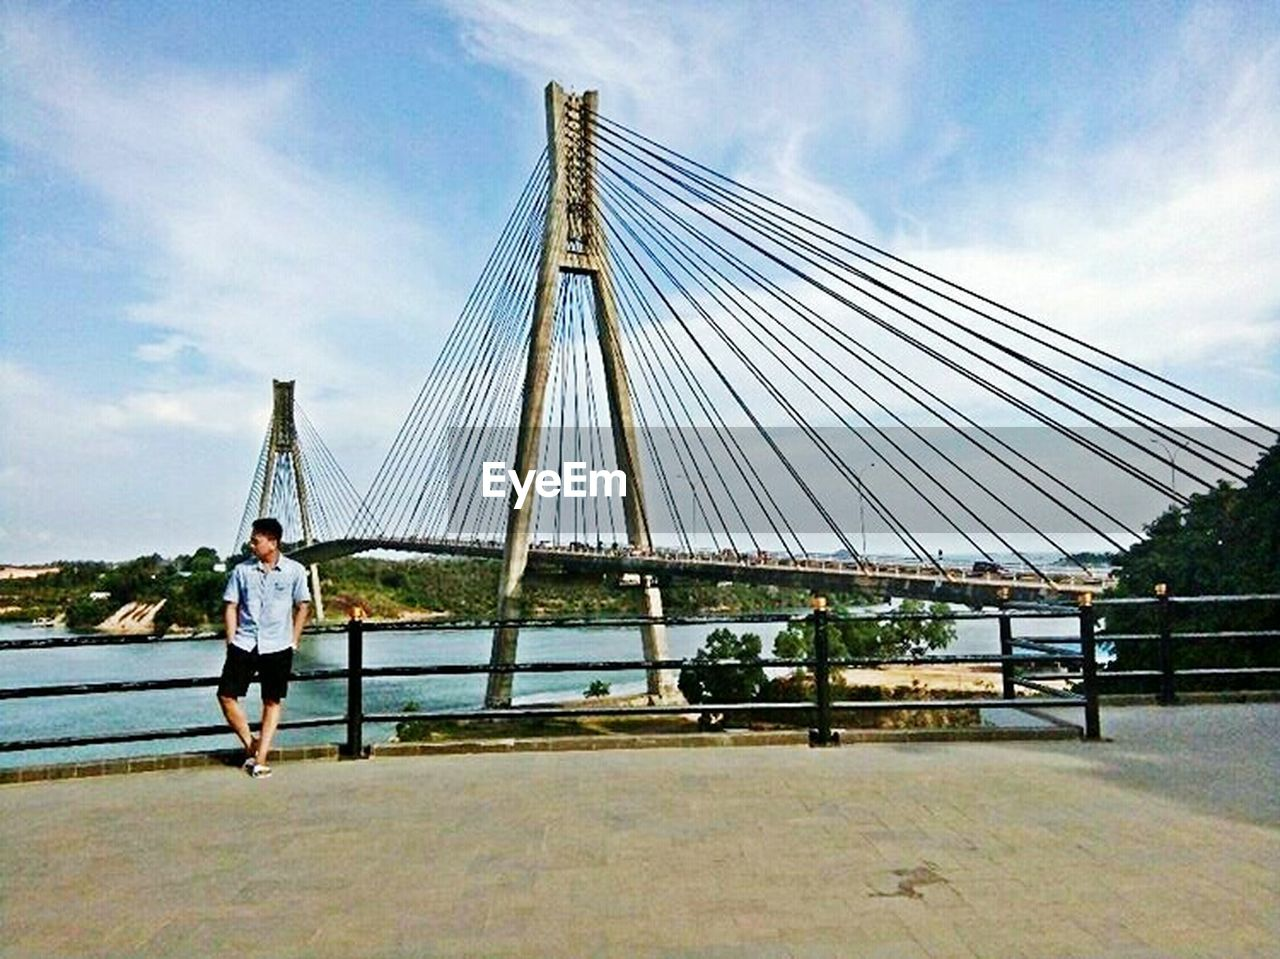 sky, cloud - sky, real people, one person, full length, bridge - man made structure, leisure activity, day, lifestyles, casual clothing, outdoors, built structure, architecture, men, suspension bridge, young adult, tree, nature, adult, adults only, people